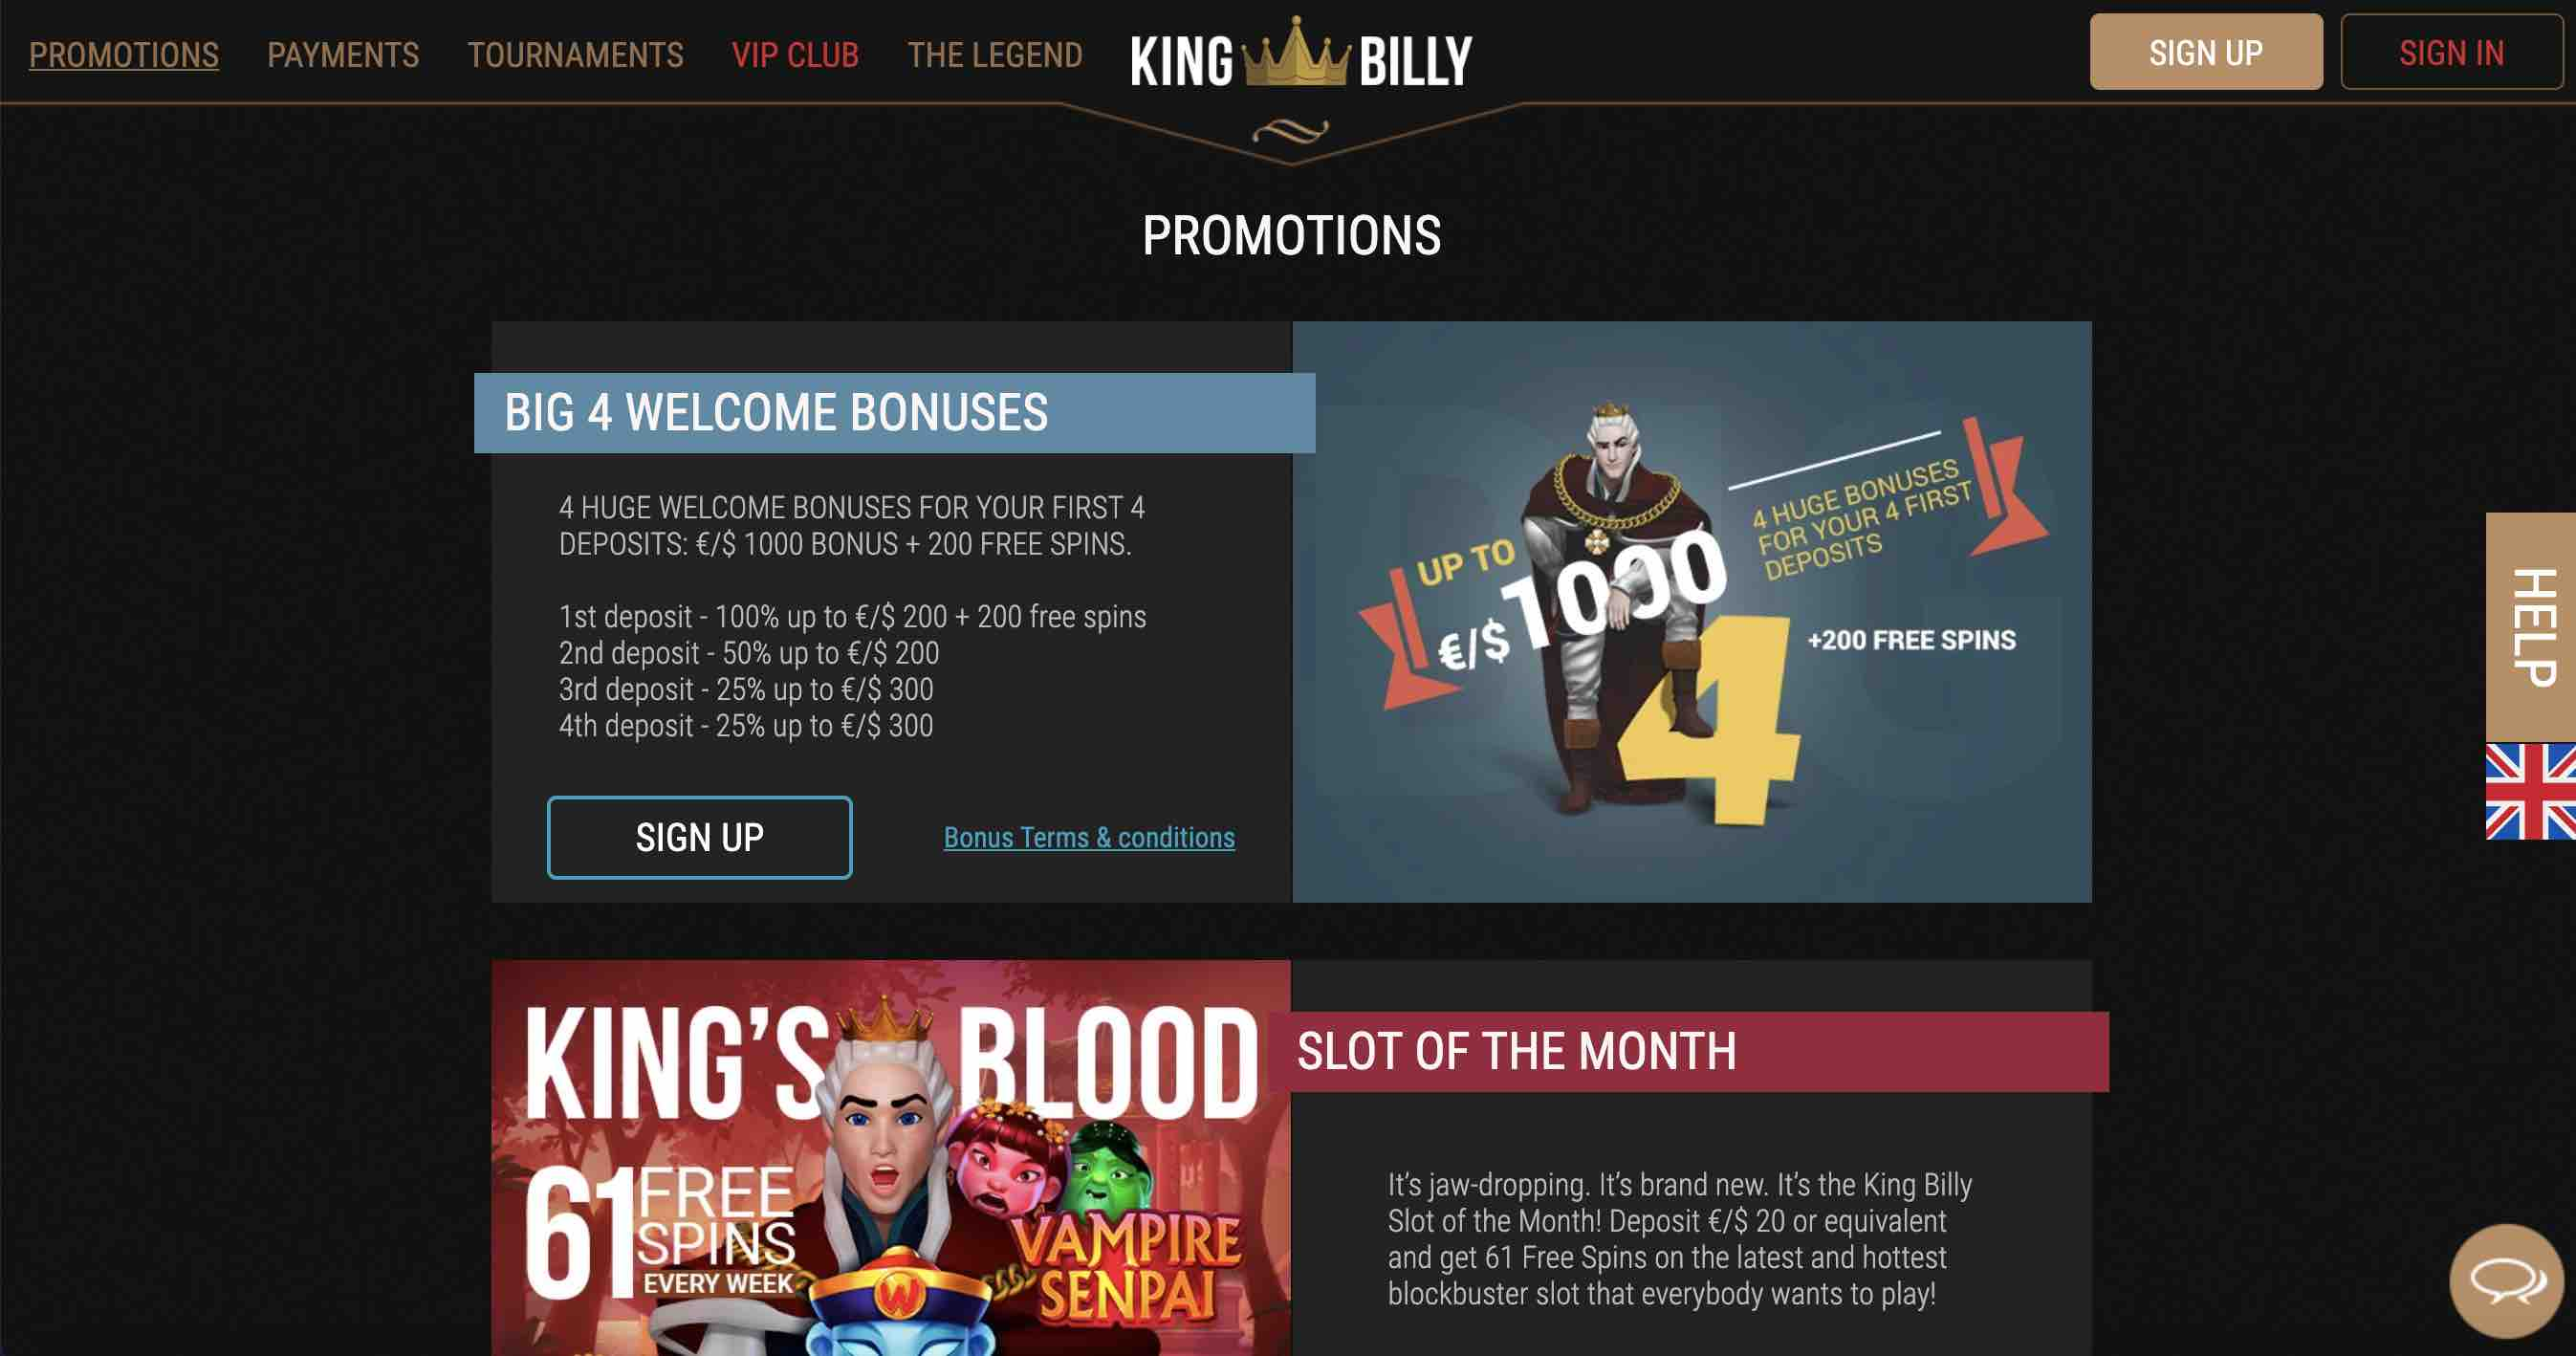 Promotions at King Billy Casino